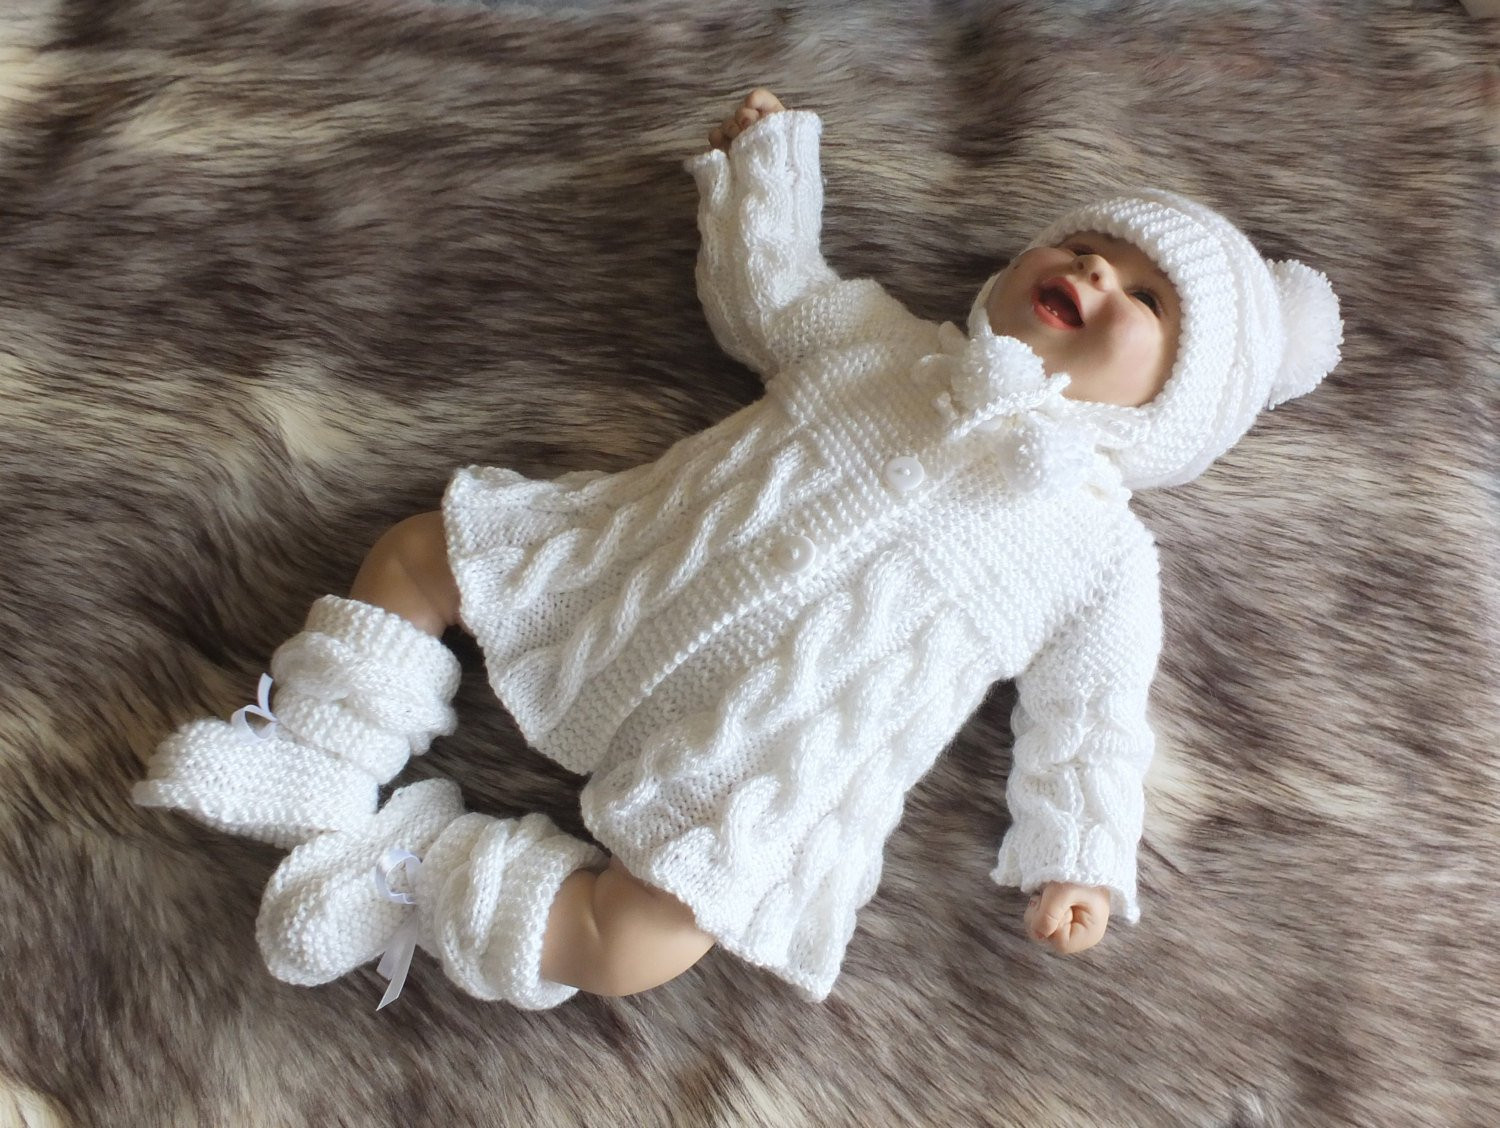 Knitted Baby Clothes New White Baby Girl Ing Home Outfit Knitted Baby Clothes Of Innovative 45 Images Knitted Baby Clothes